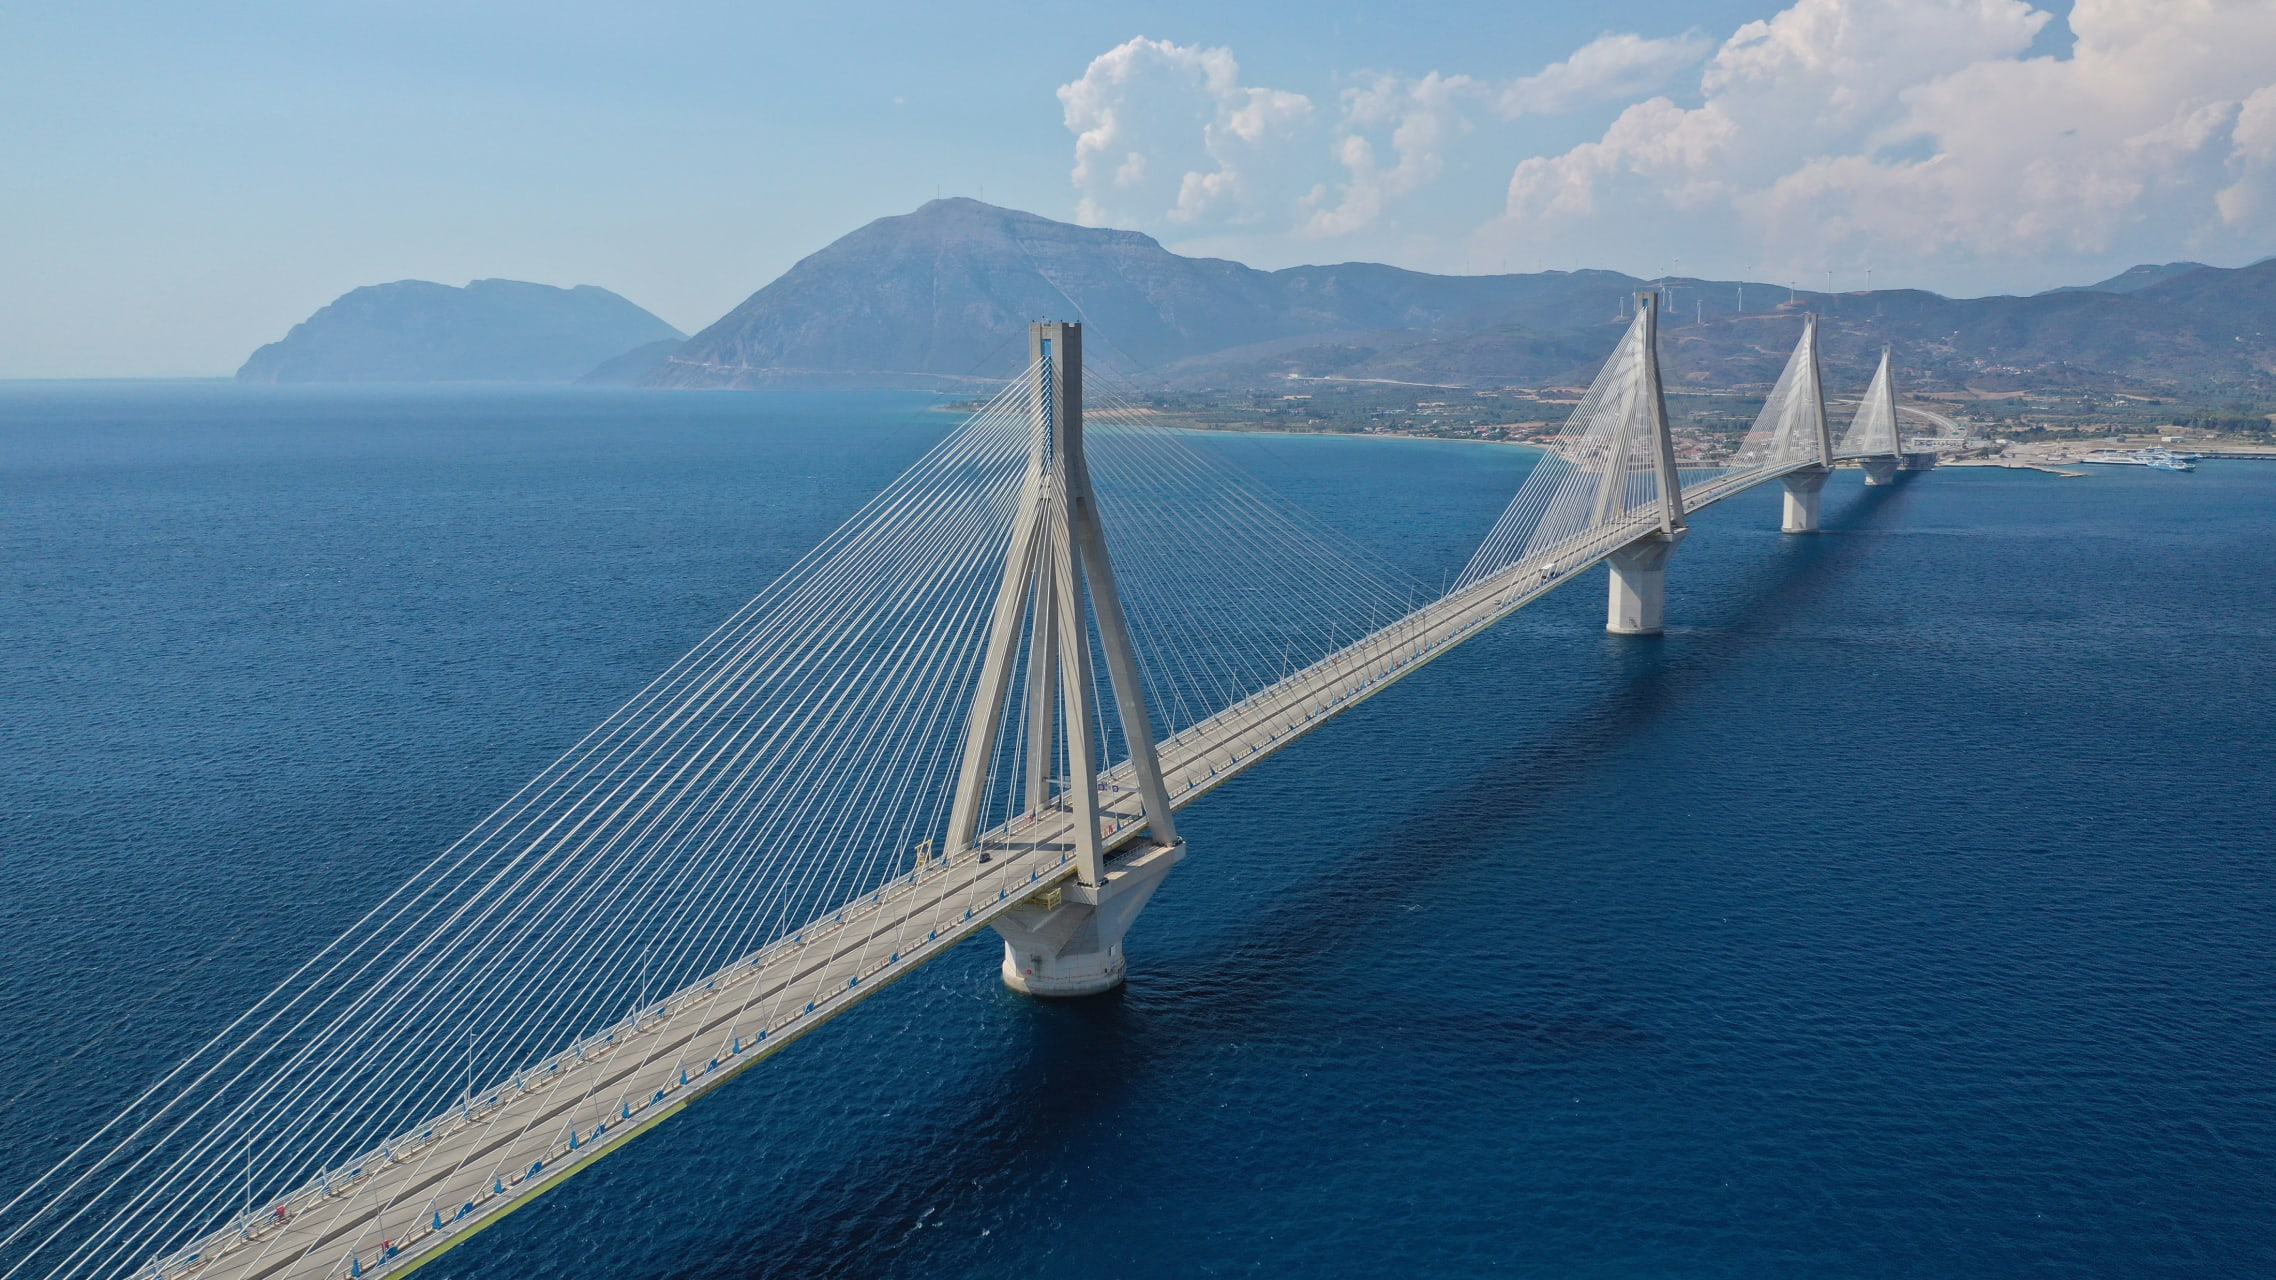 Patra - A Marvel of Engineering - the Rion-Antirion Bridge